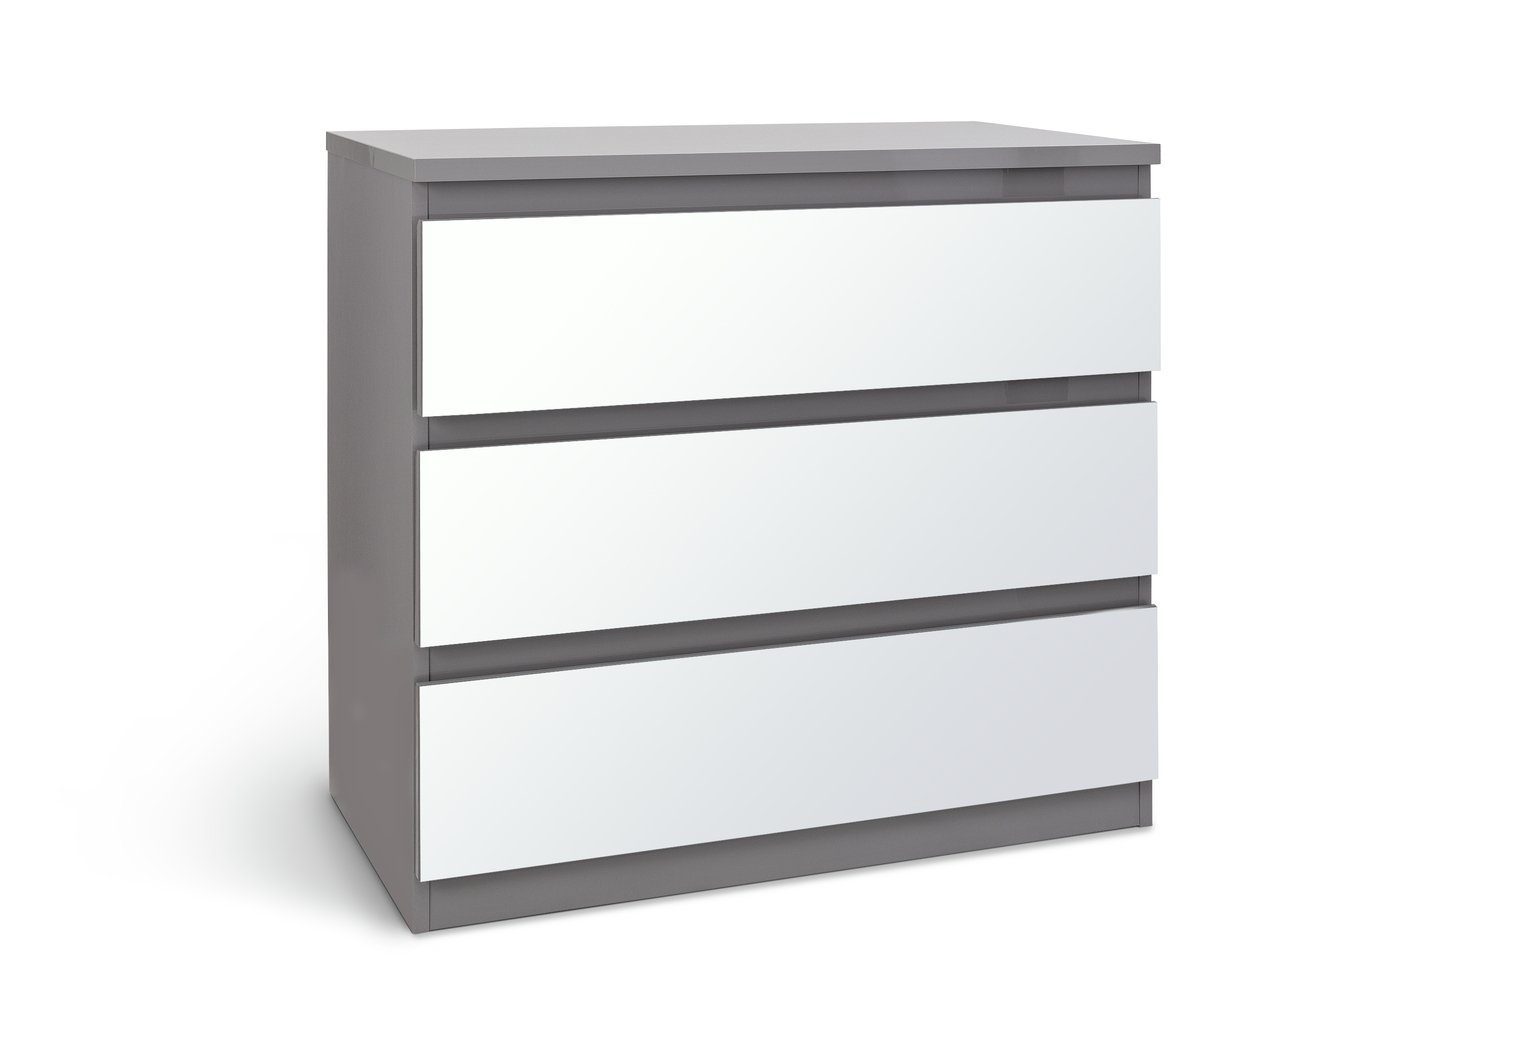 Argos Home Jenson Gloss 3 Drw Mirror Chest of Drawers - Grey